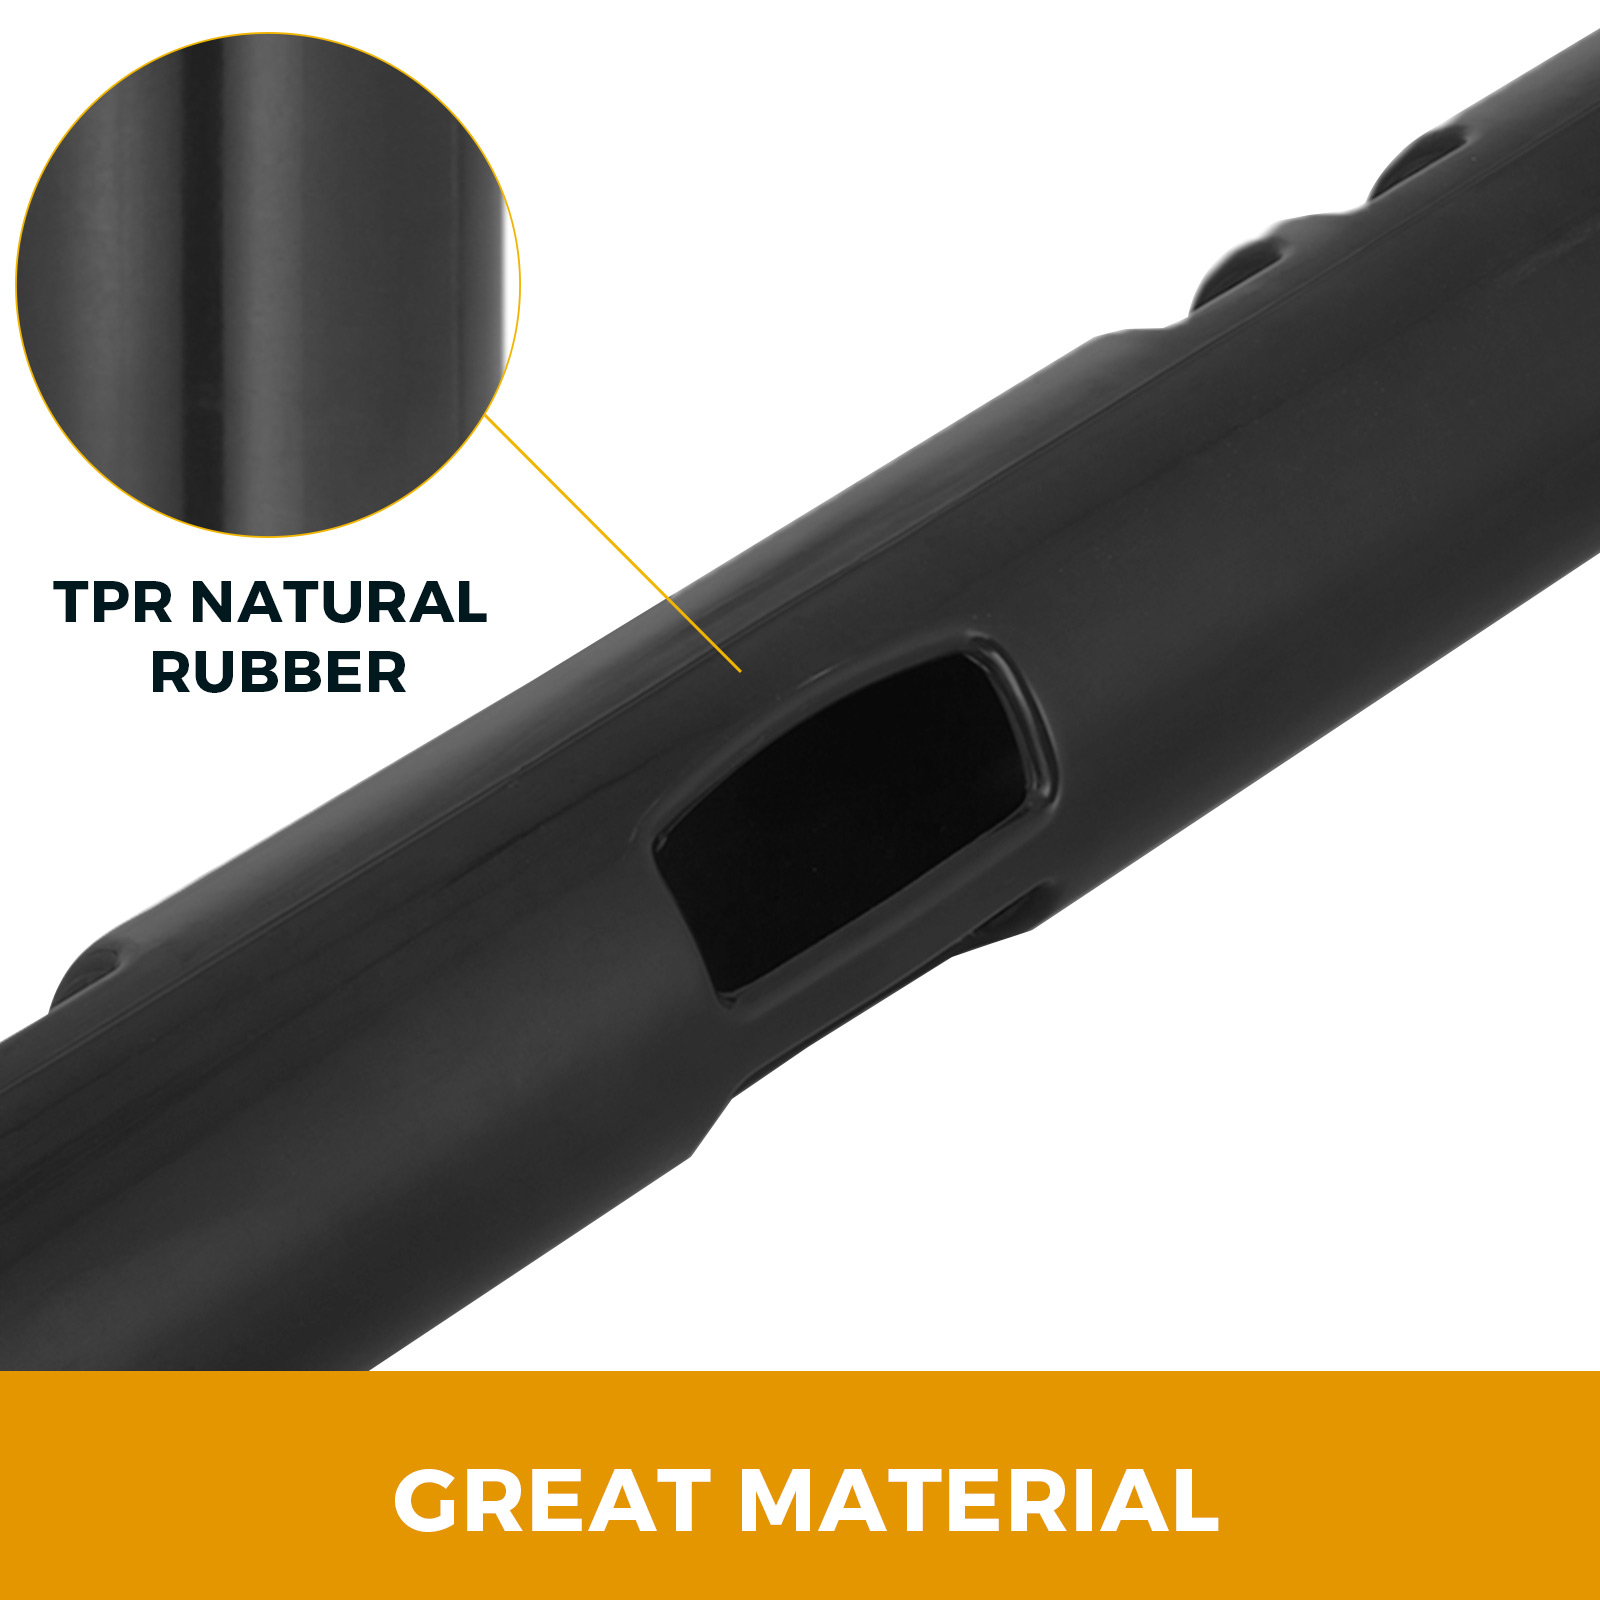 Vipr-Fitpro-Fitness-Tube-Loaded-Movement-Training-weightlifting-4-6-8-10-12-Kg thumbnail 266